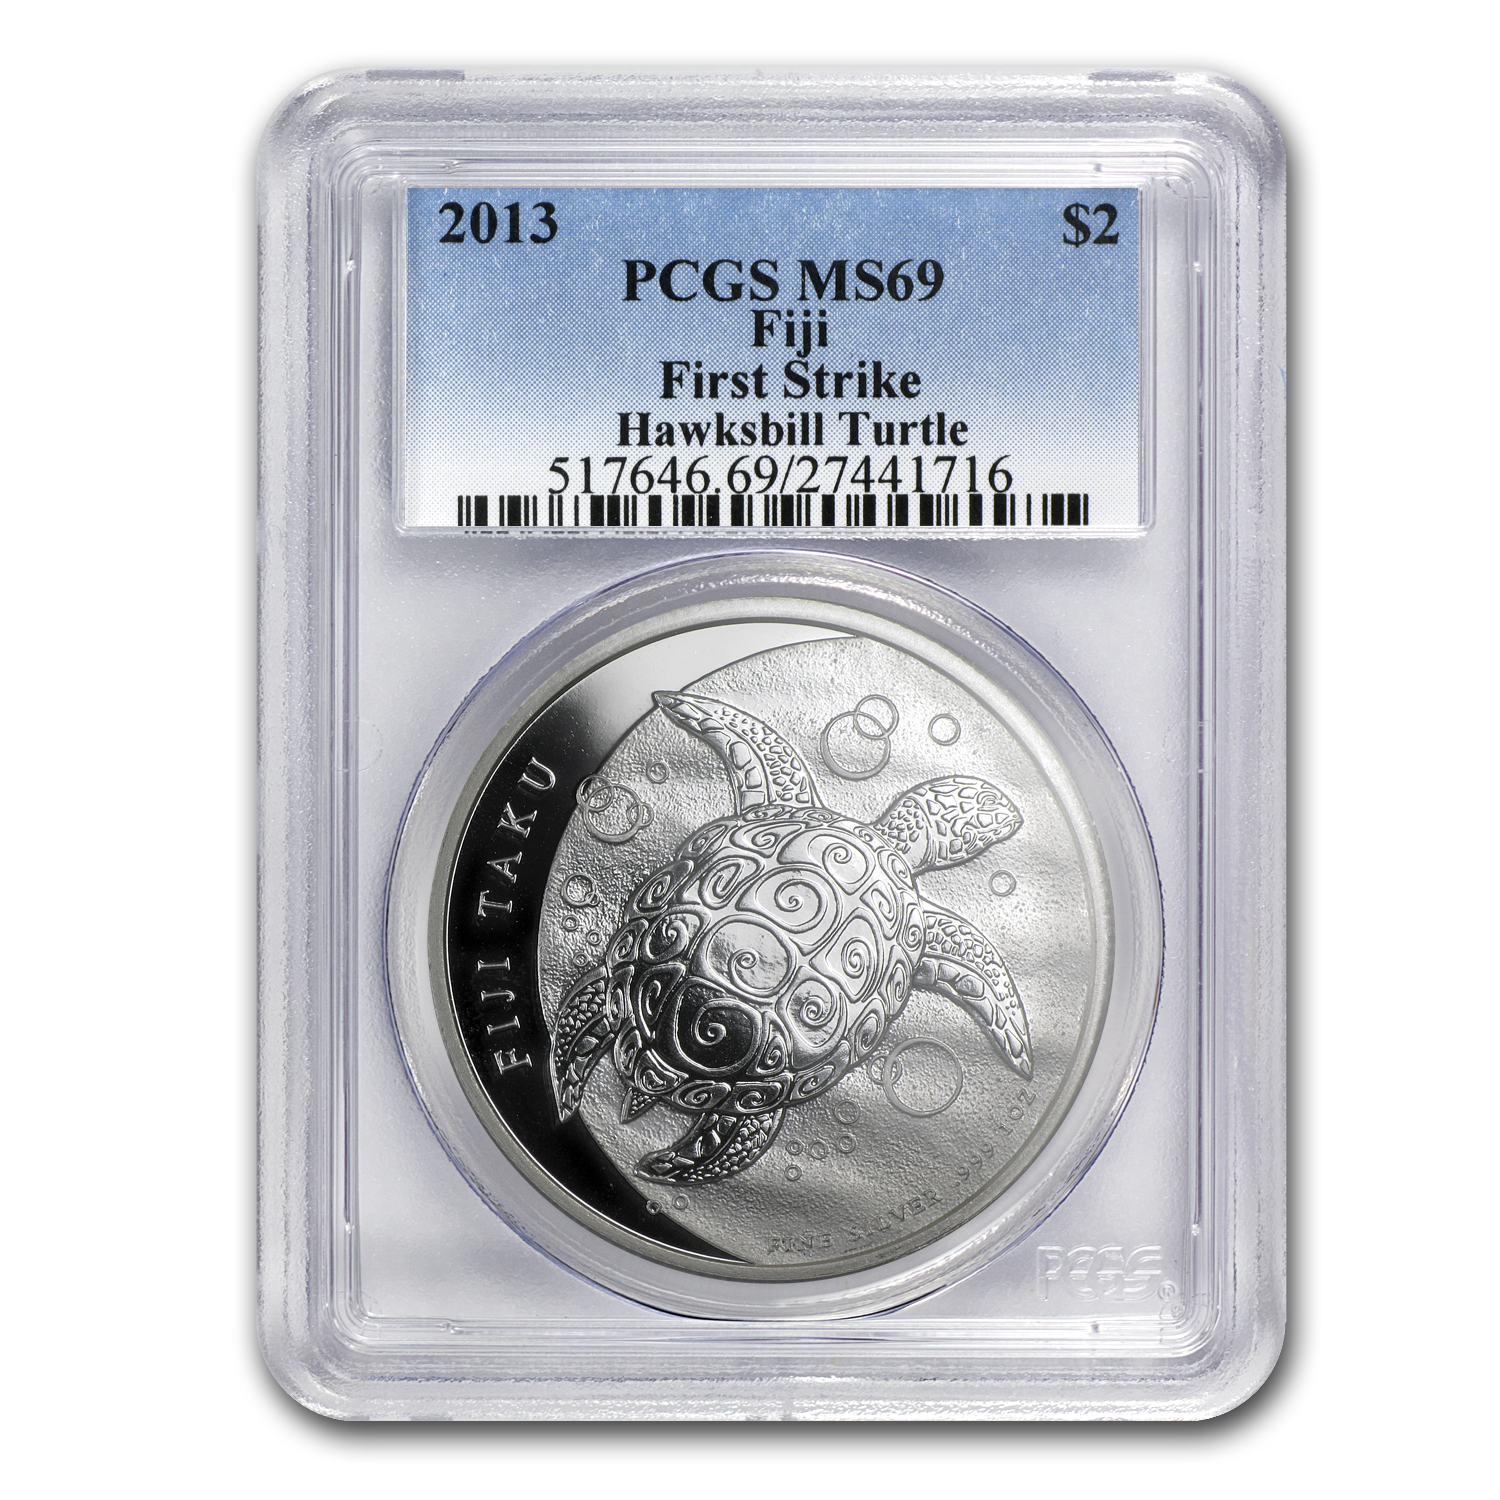 2013 1 oz Silver $2 Fiji Taku MS-69 PCGS First Strike